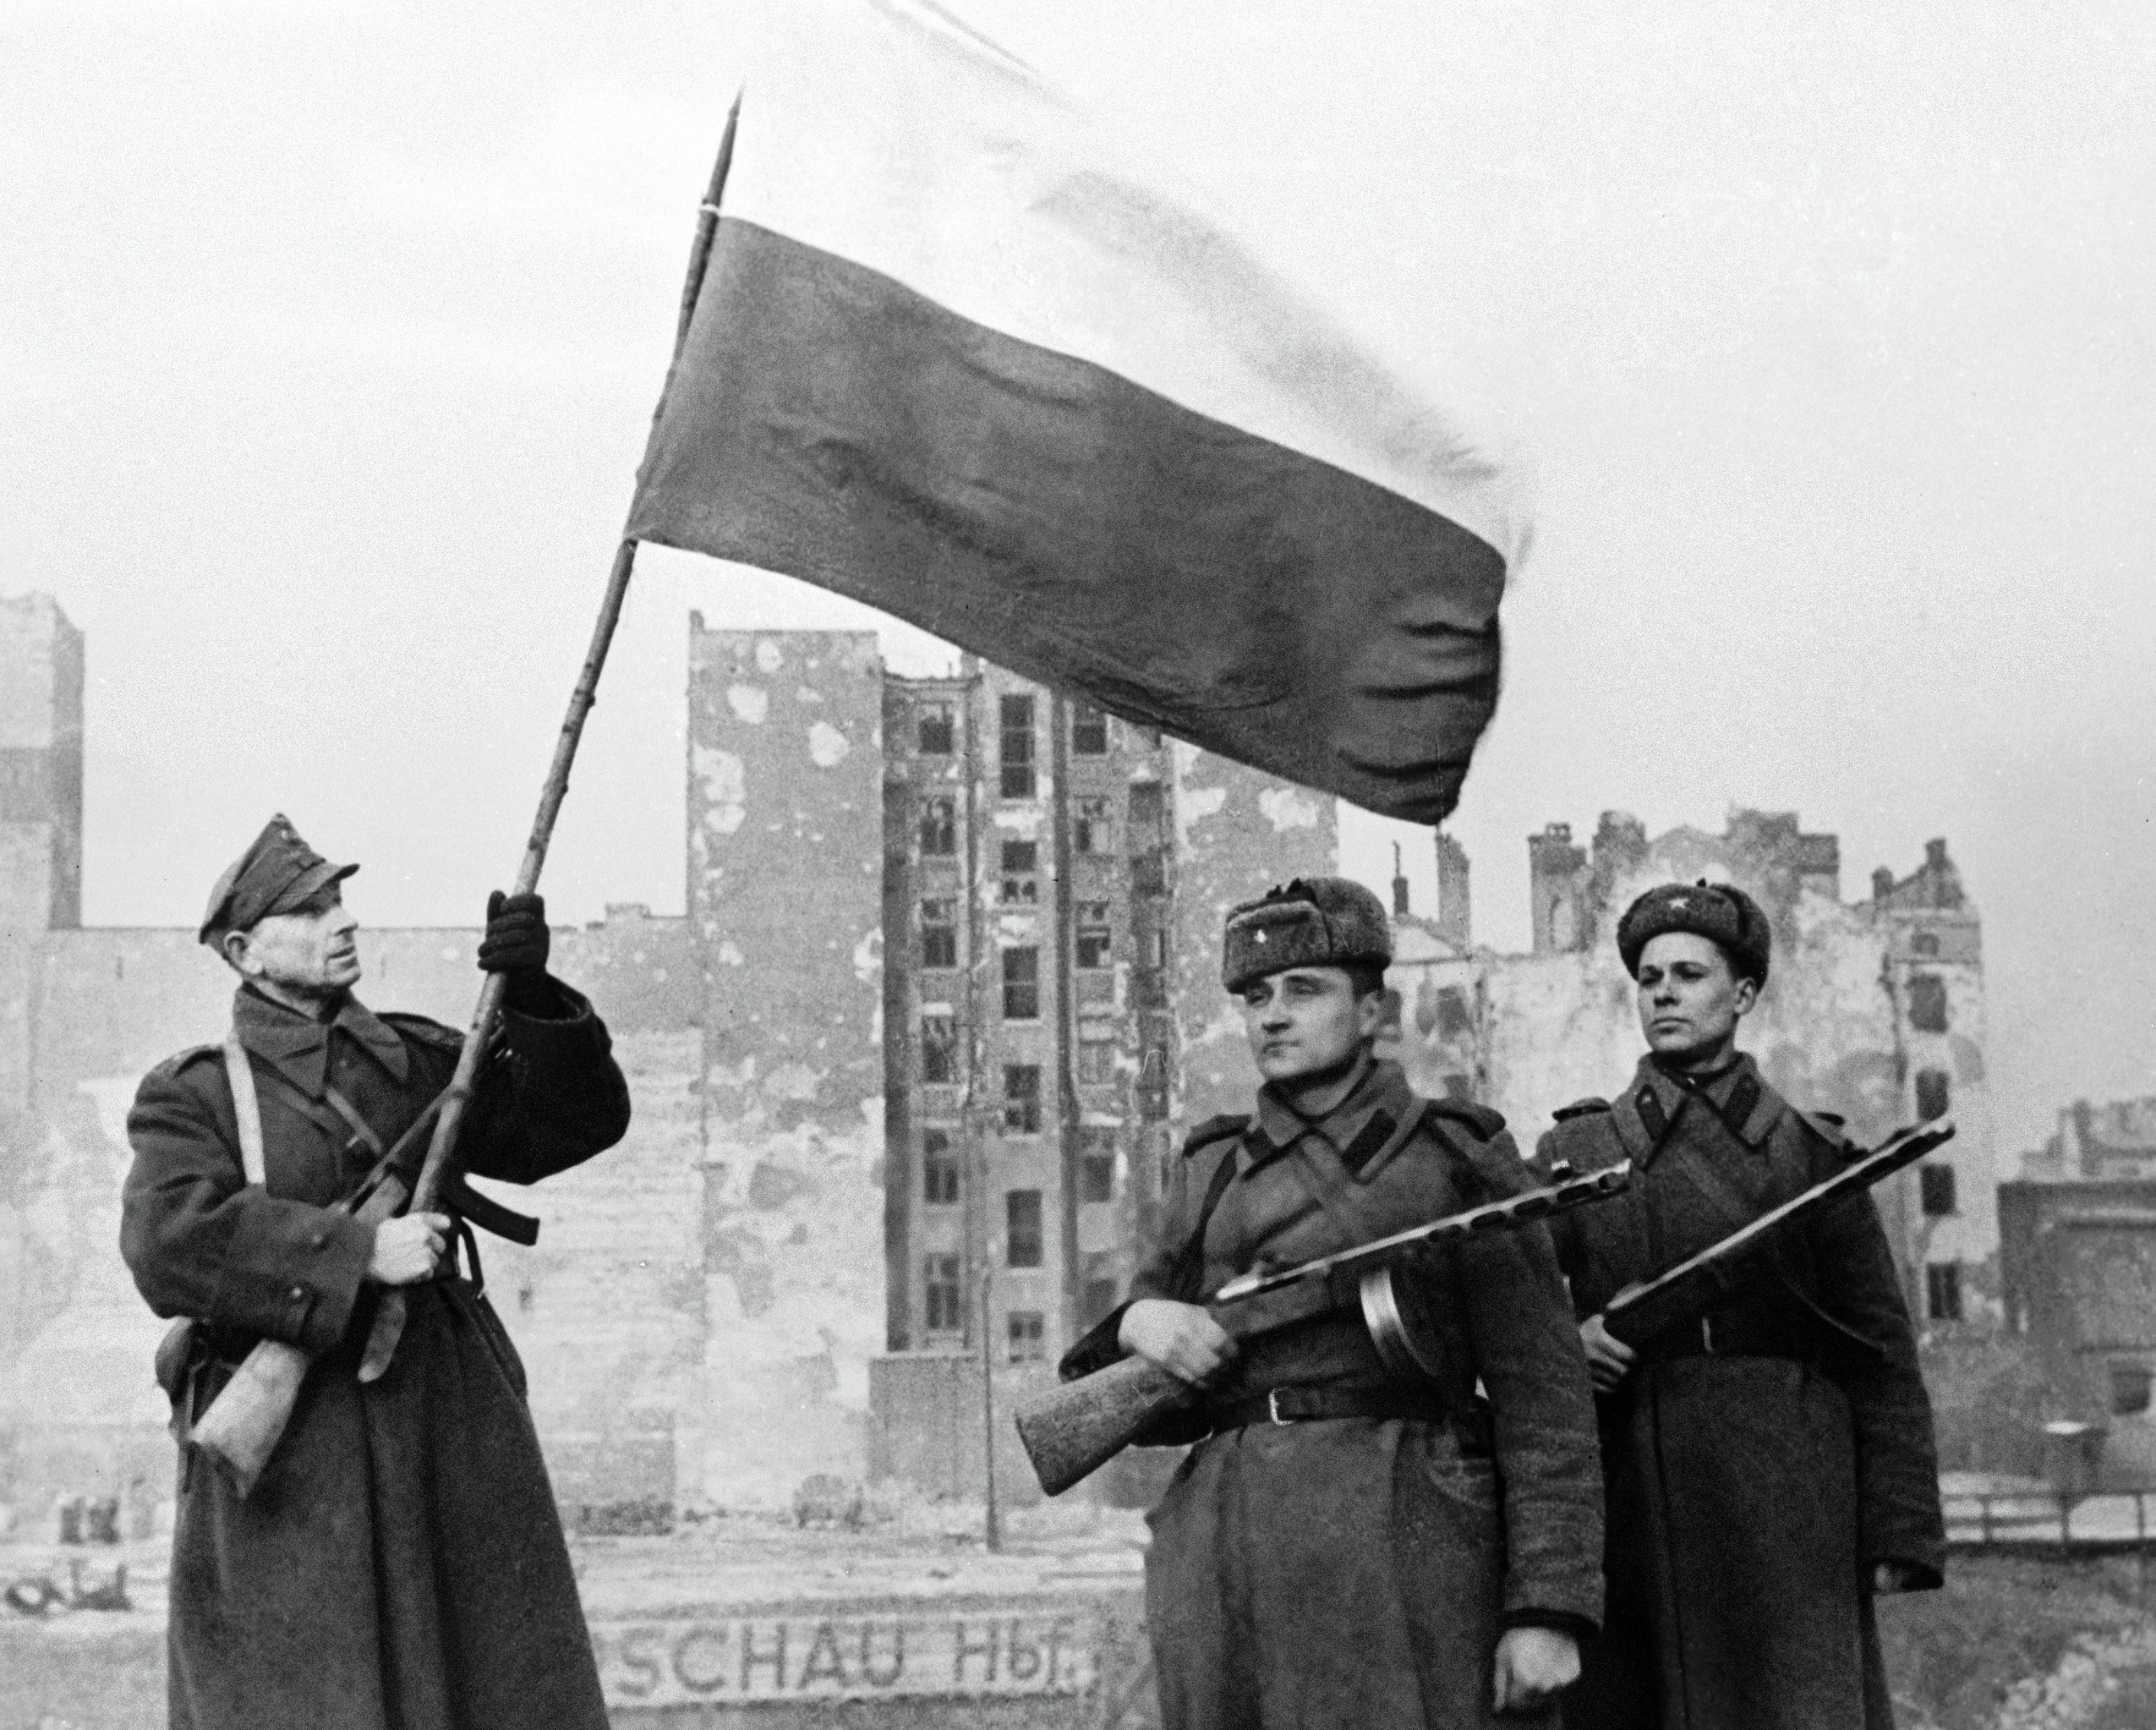 Soldiers of Wojsko Polske (left with flag) and Soviet Army (right) raising a flag in liberated Warsaw